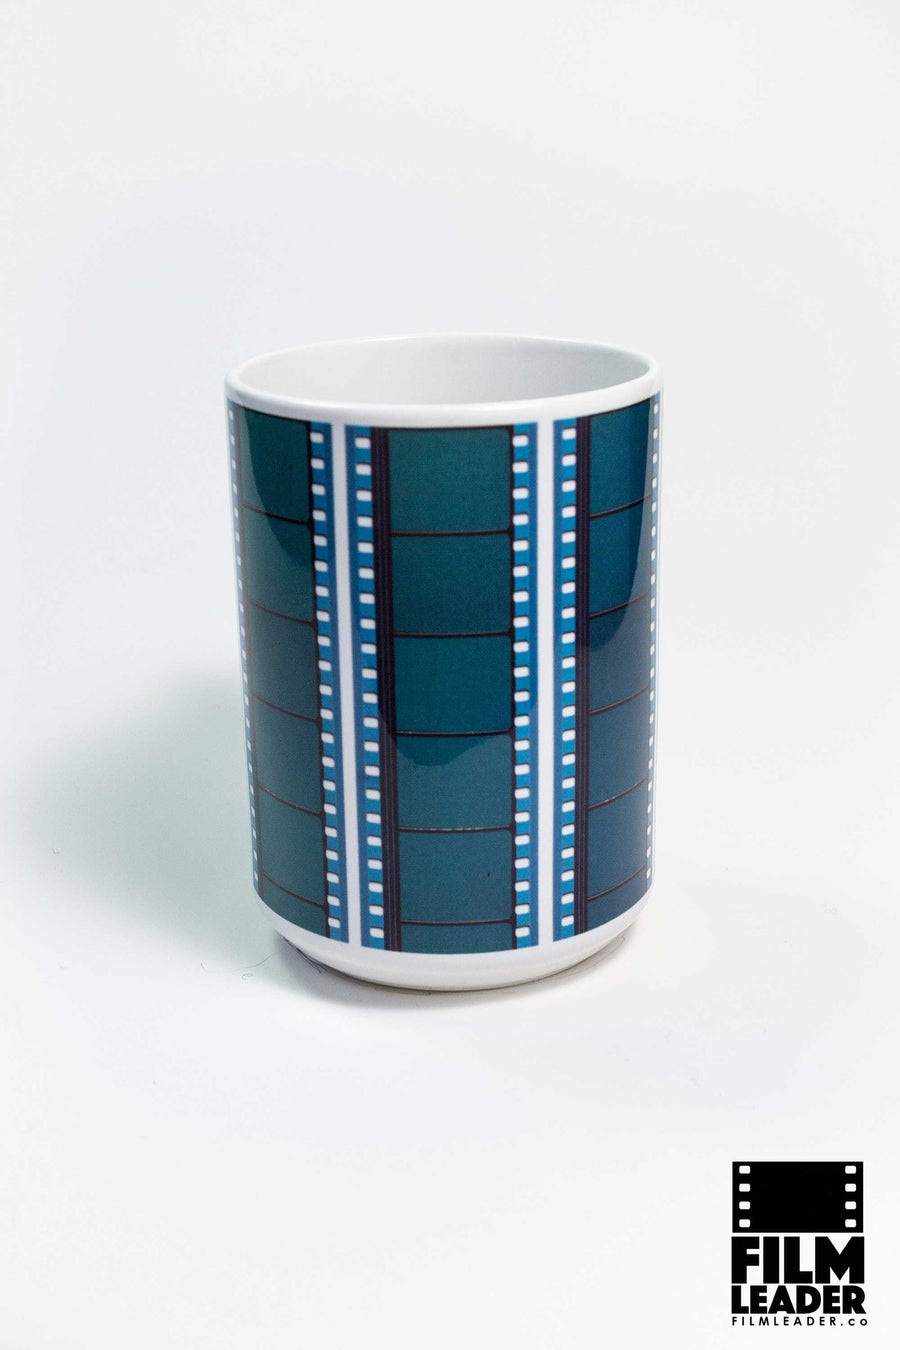 Film Leader Mug #1 - 15 oz.